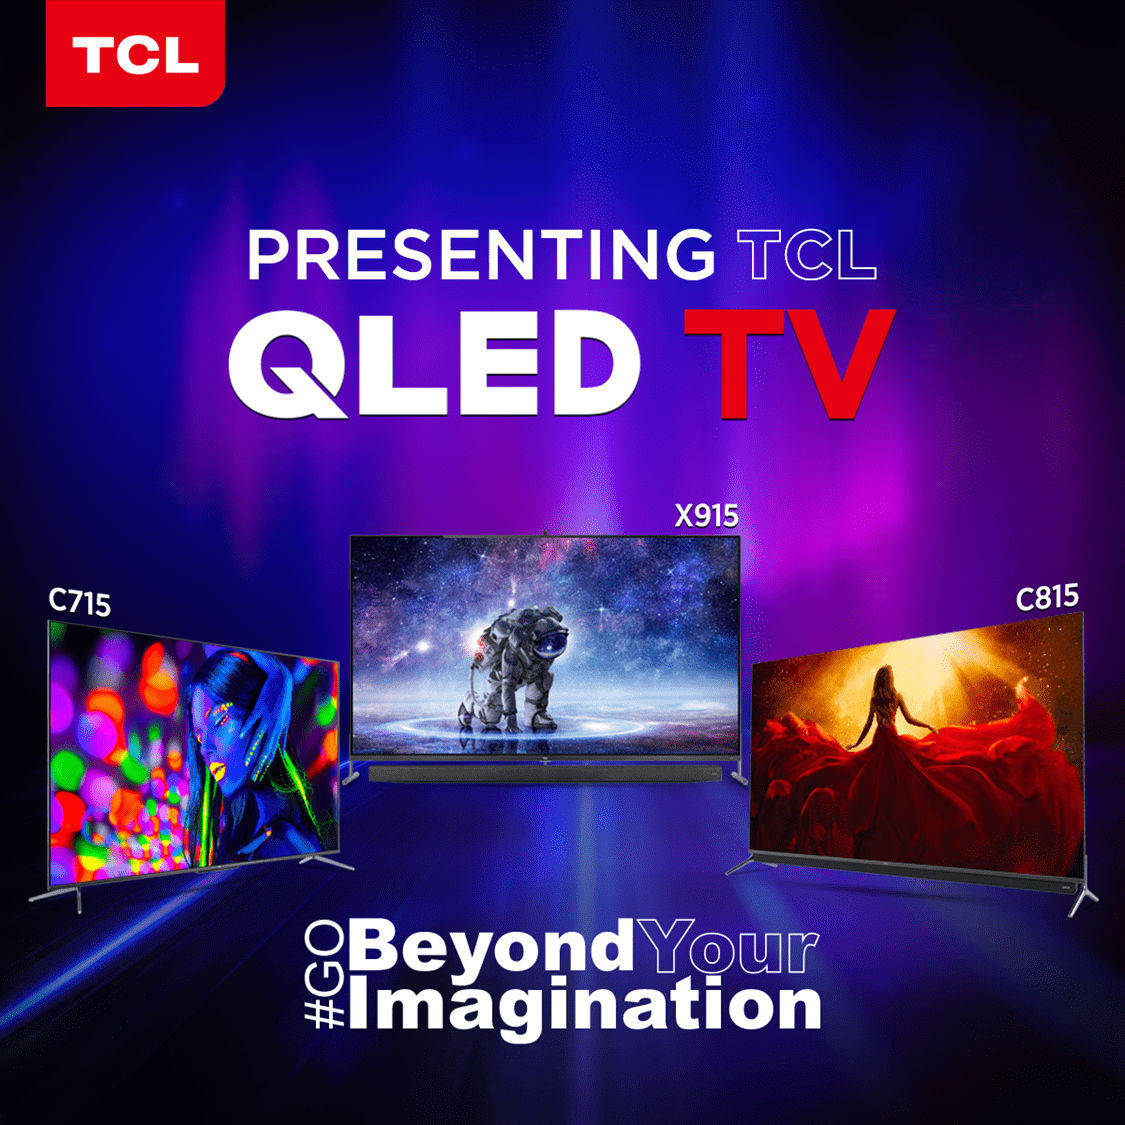 TCL launches New 8K & 4K QLED TVs